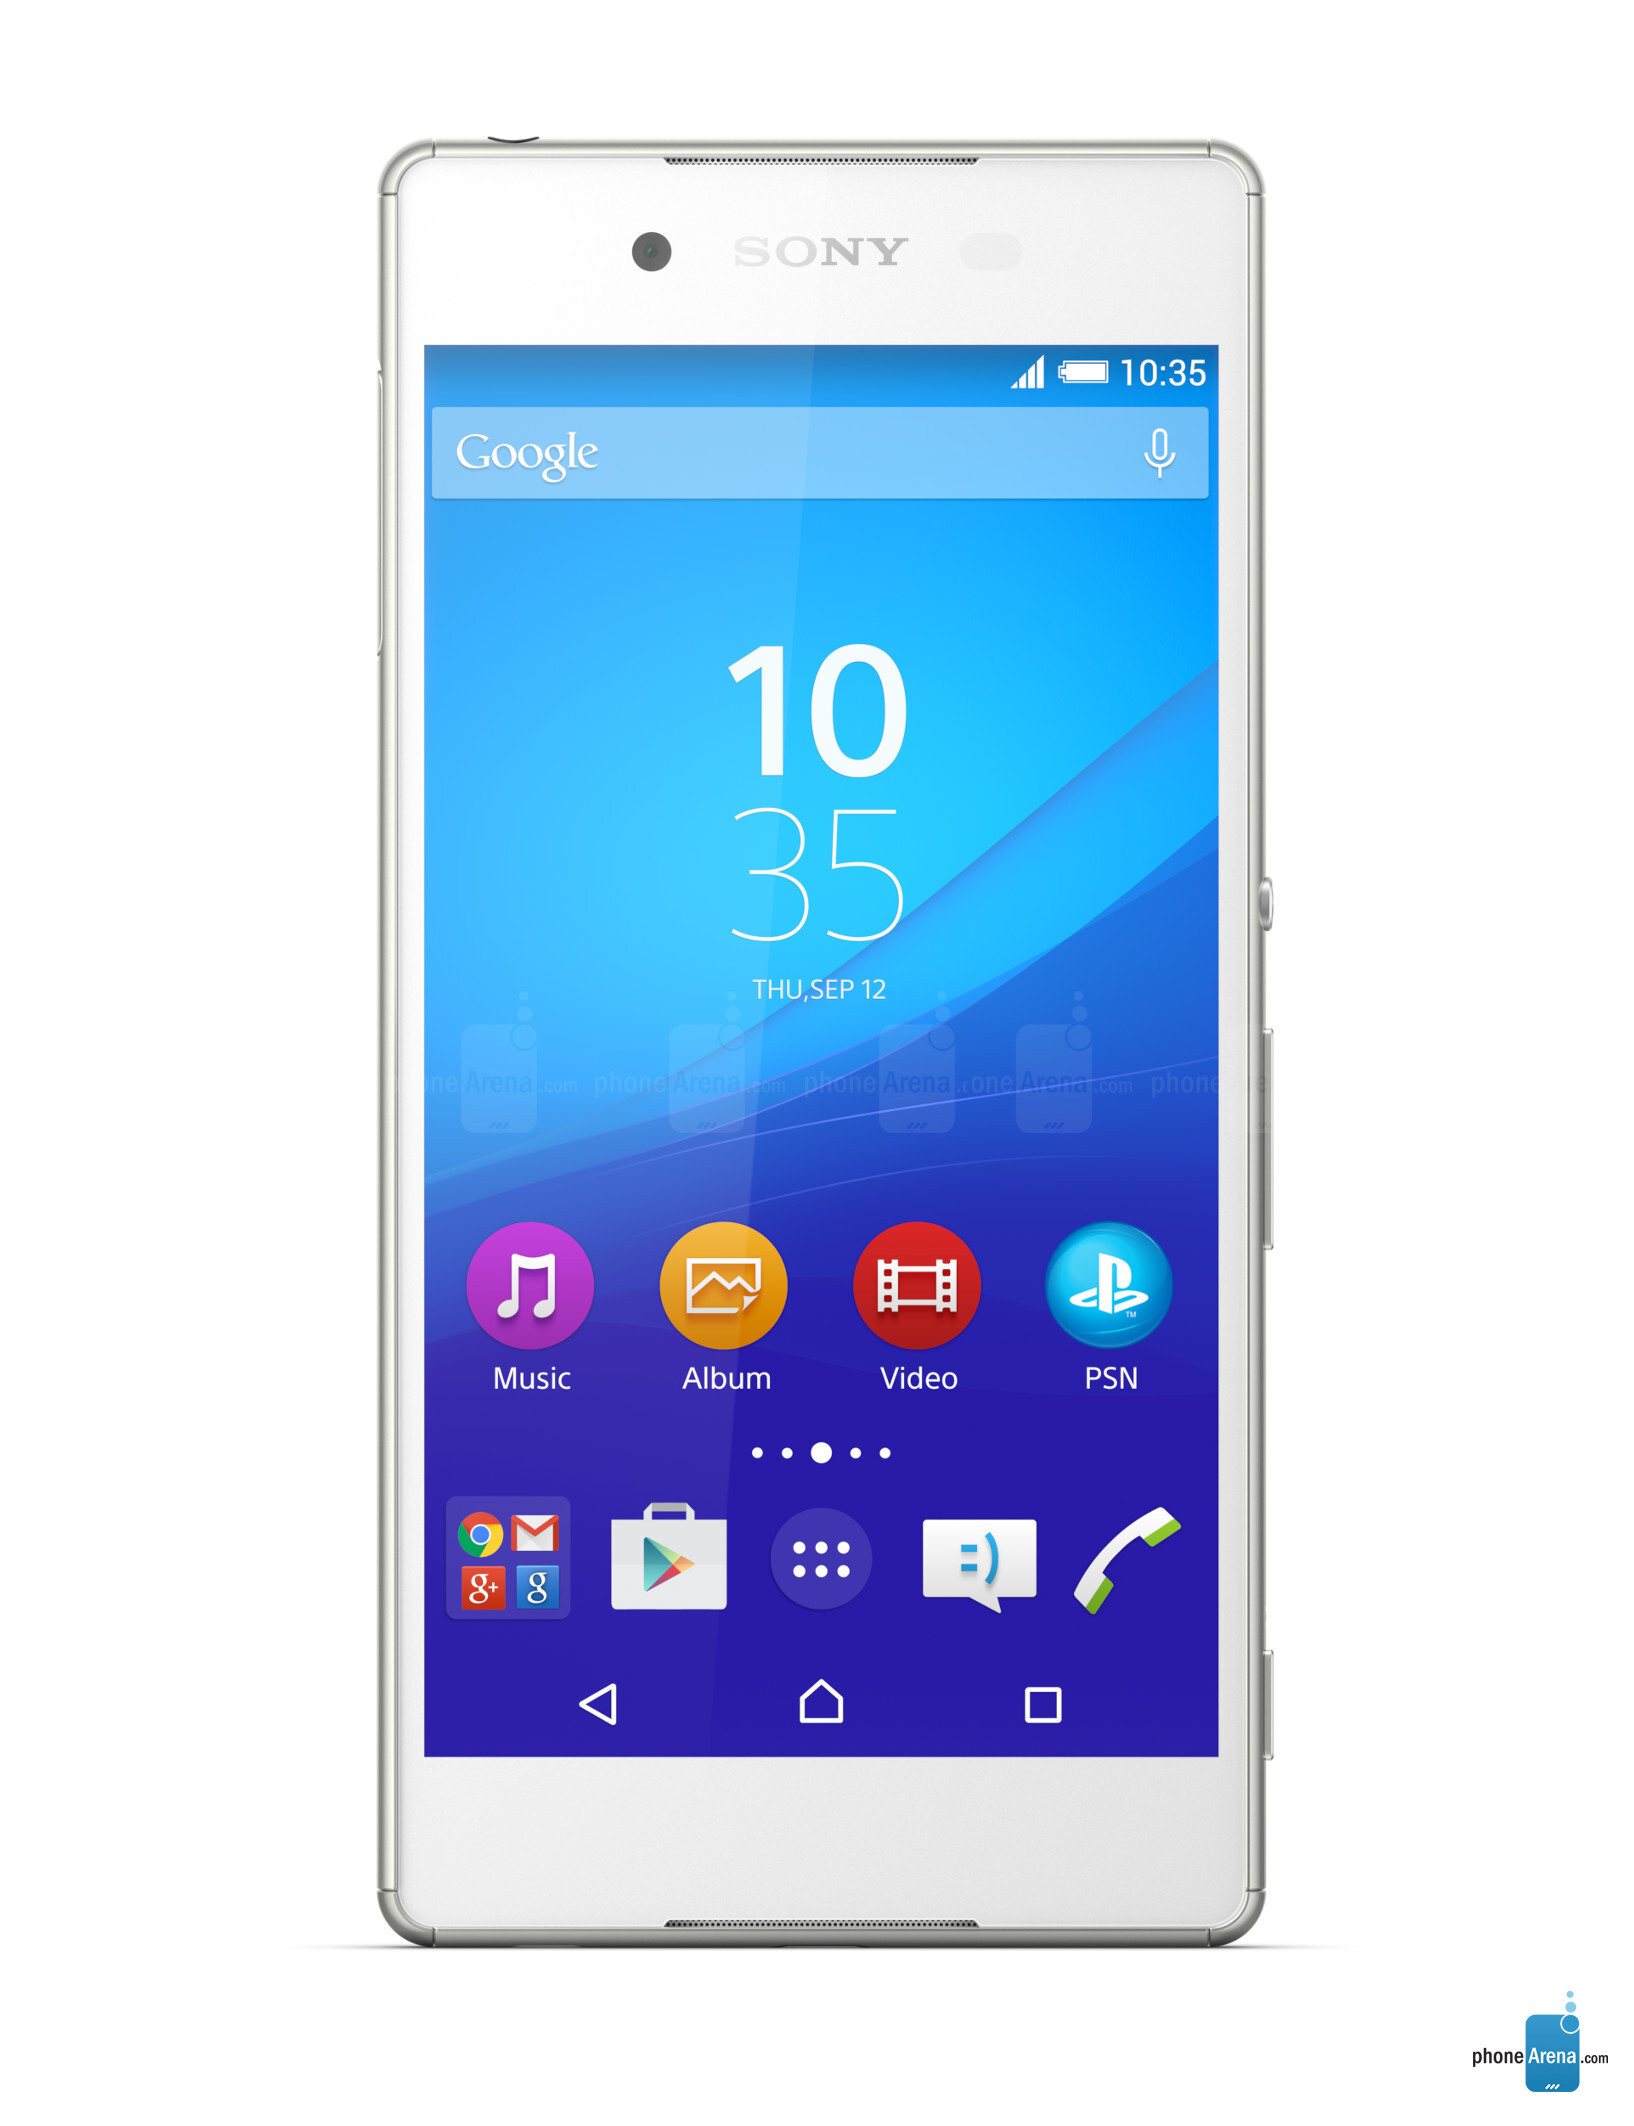 Sony Xperia Z4 Featured in Best Upcoming